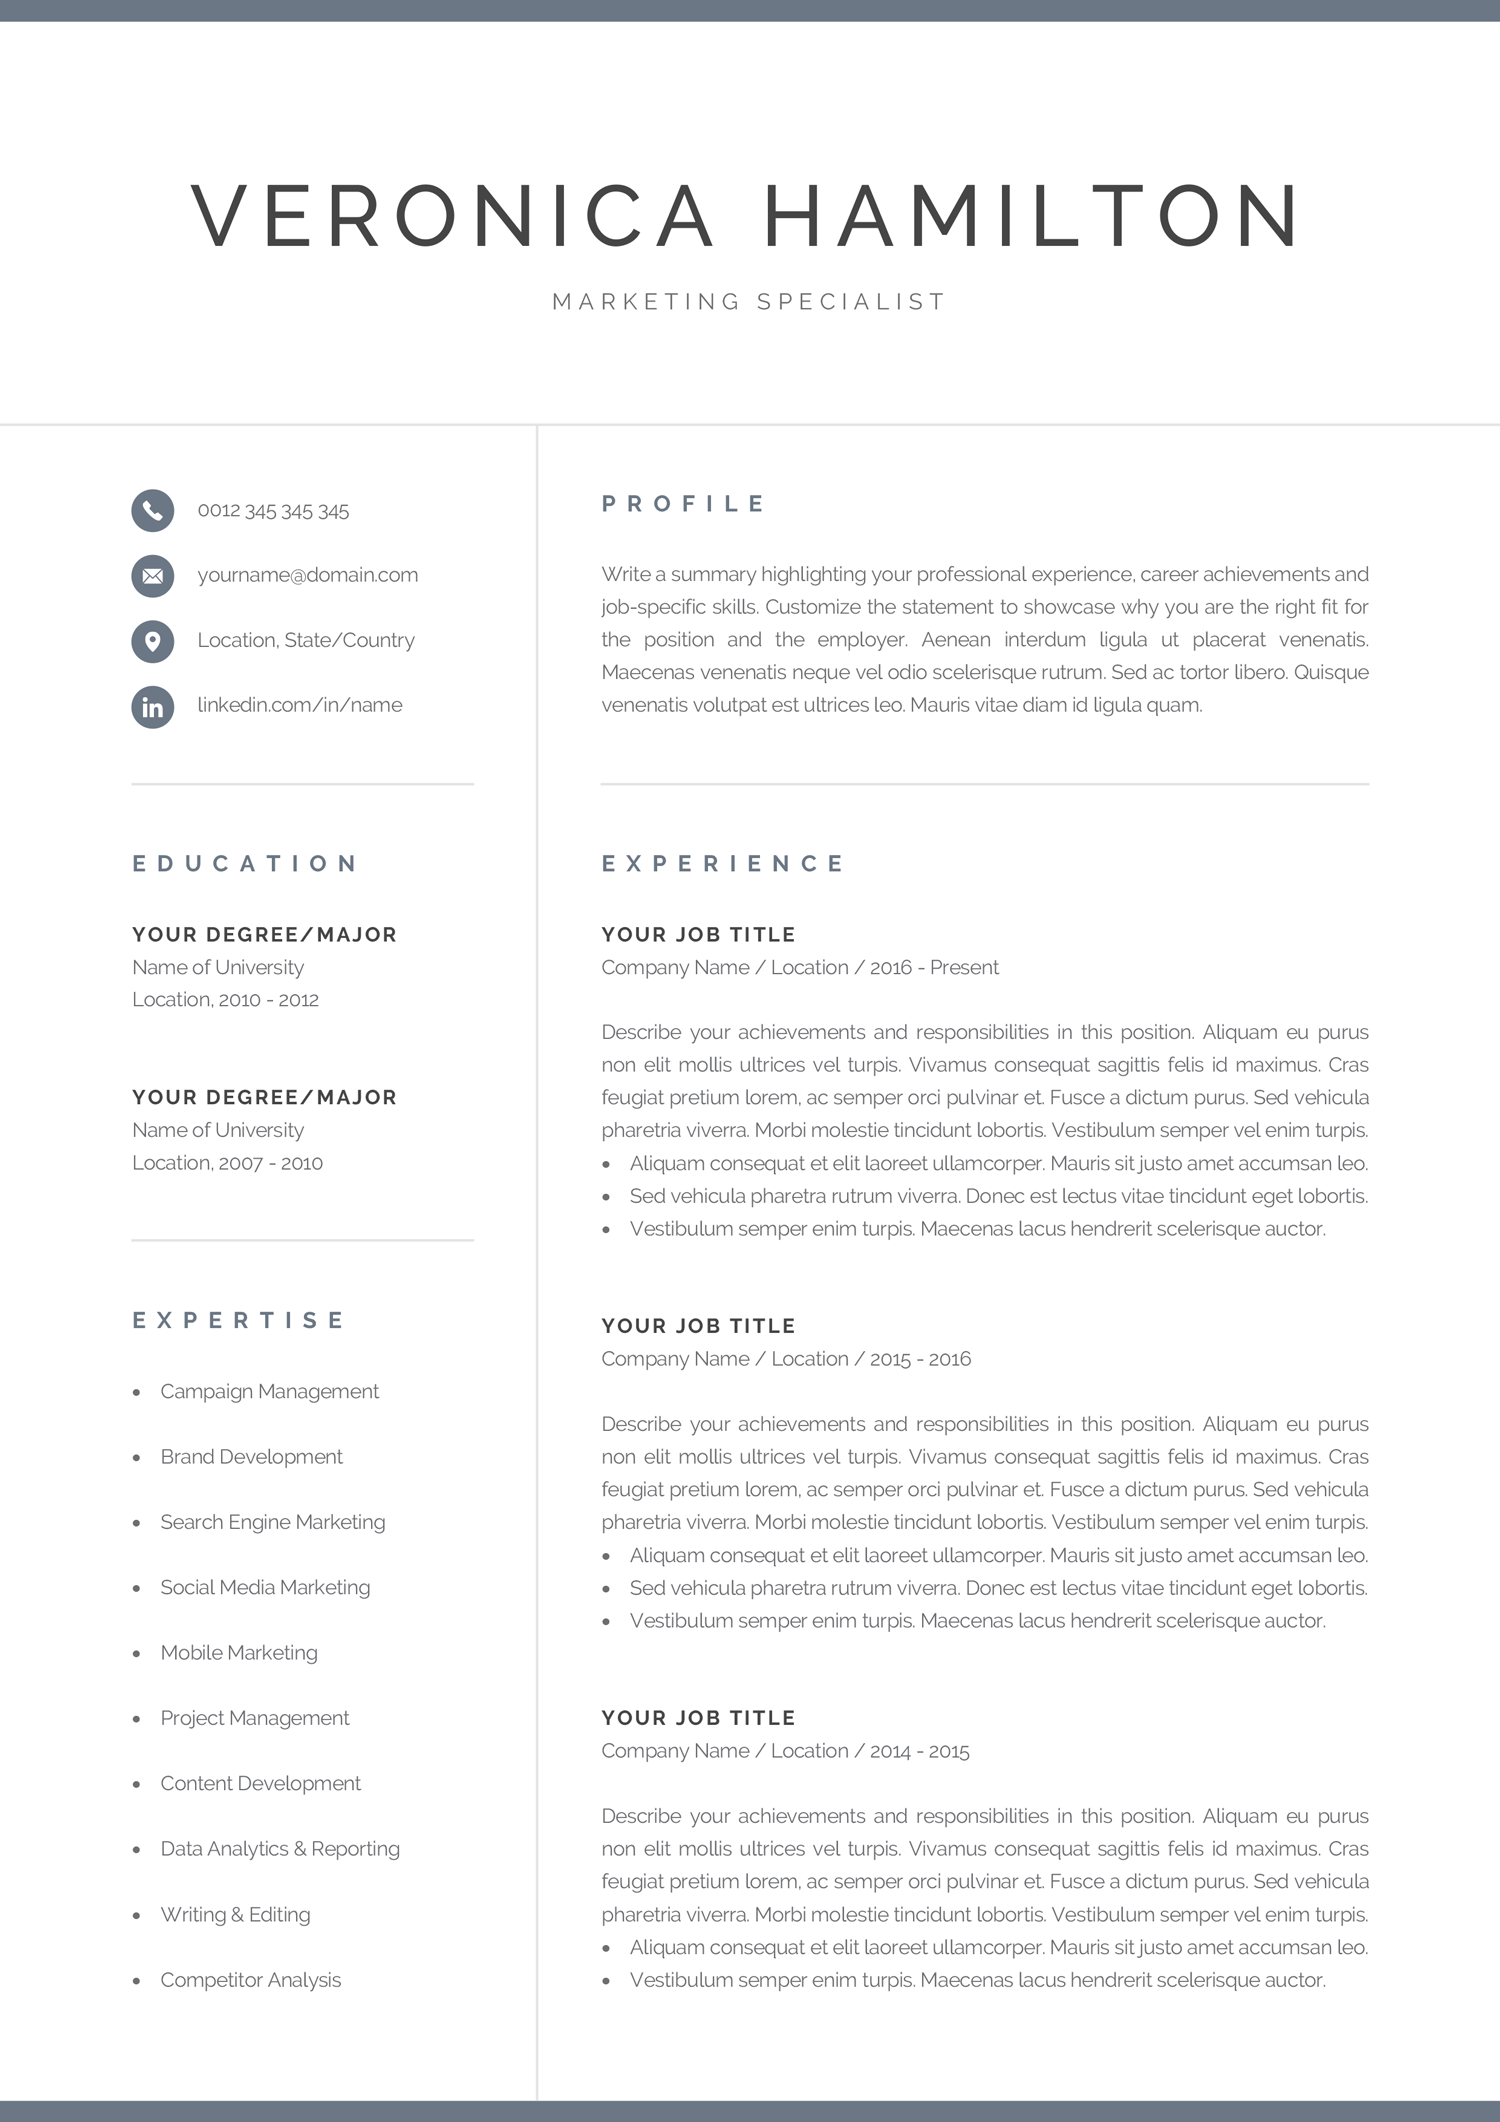 Professional Resume Template 1 And 2 Page Resume Modern Cv Template For Word Mac Pc Instant Download Cover Letter Veronica Resume Template Professional Marketing Resume Resume Examples